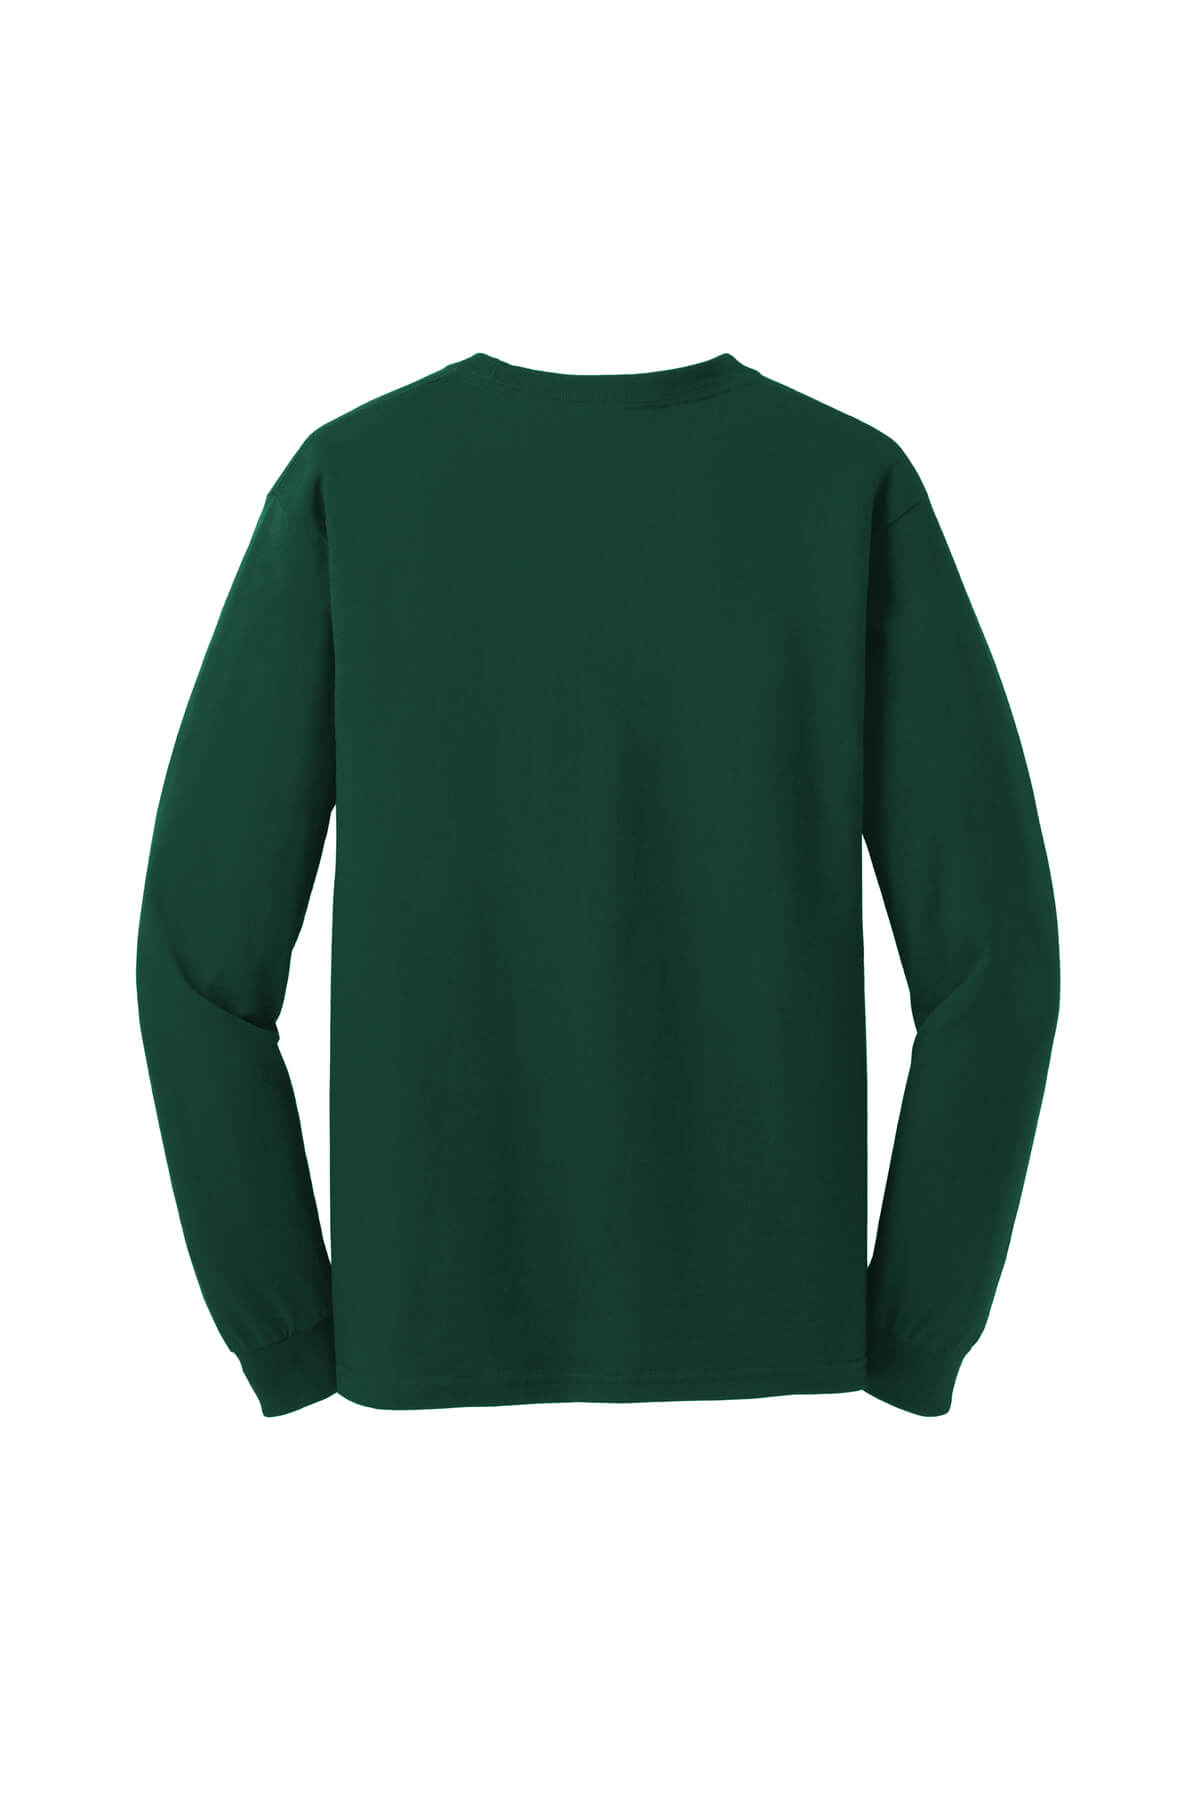 5400-forest-green-6